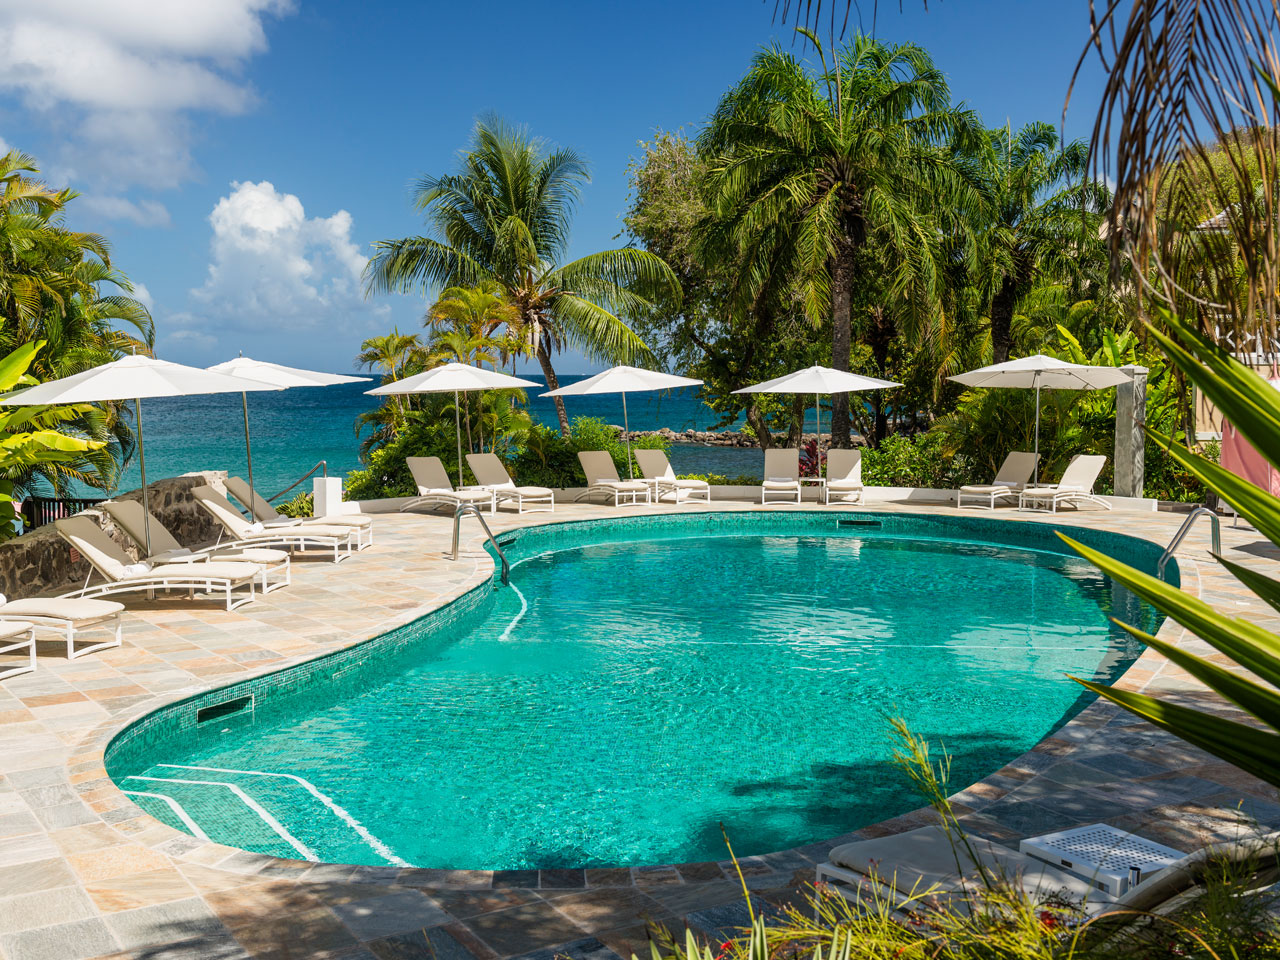 Pool at BodyHoliday resort in St. Lucia